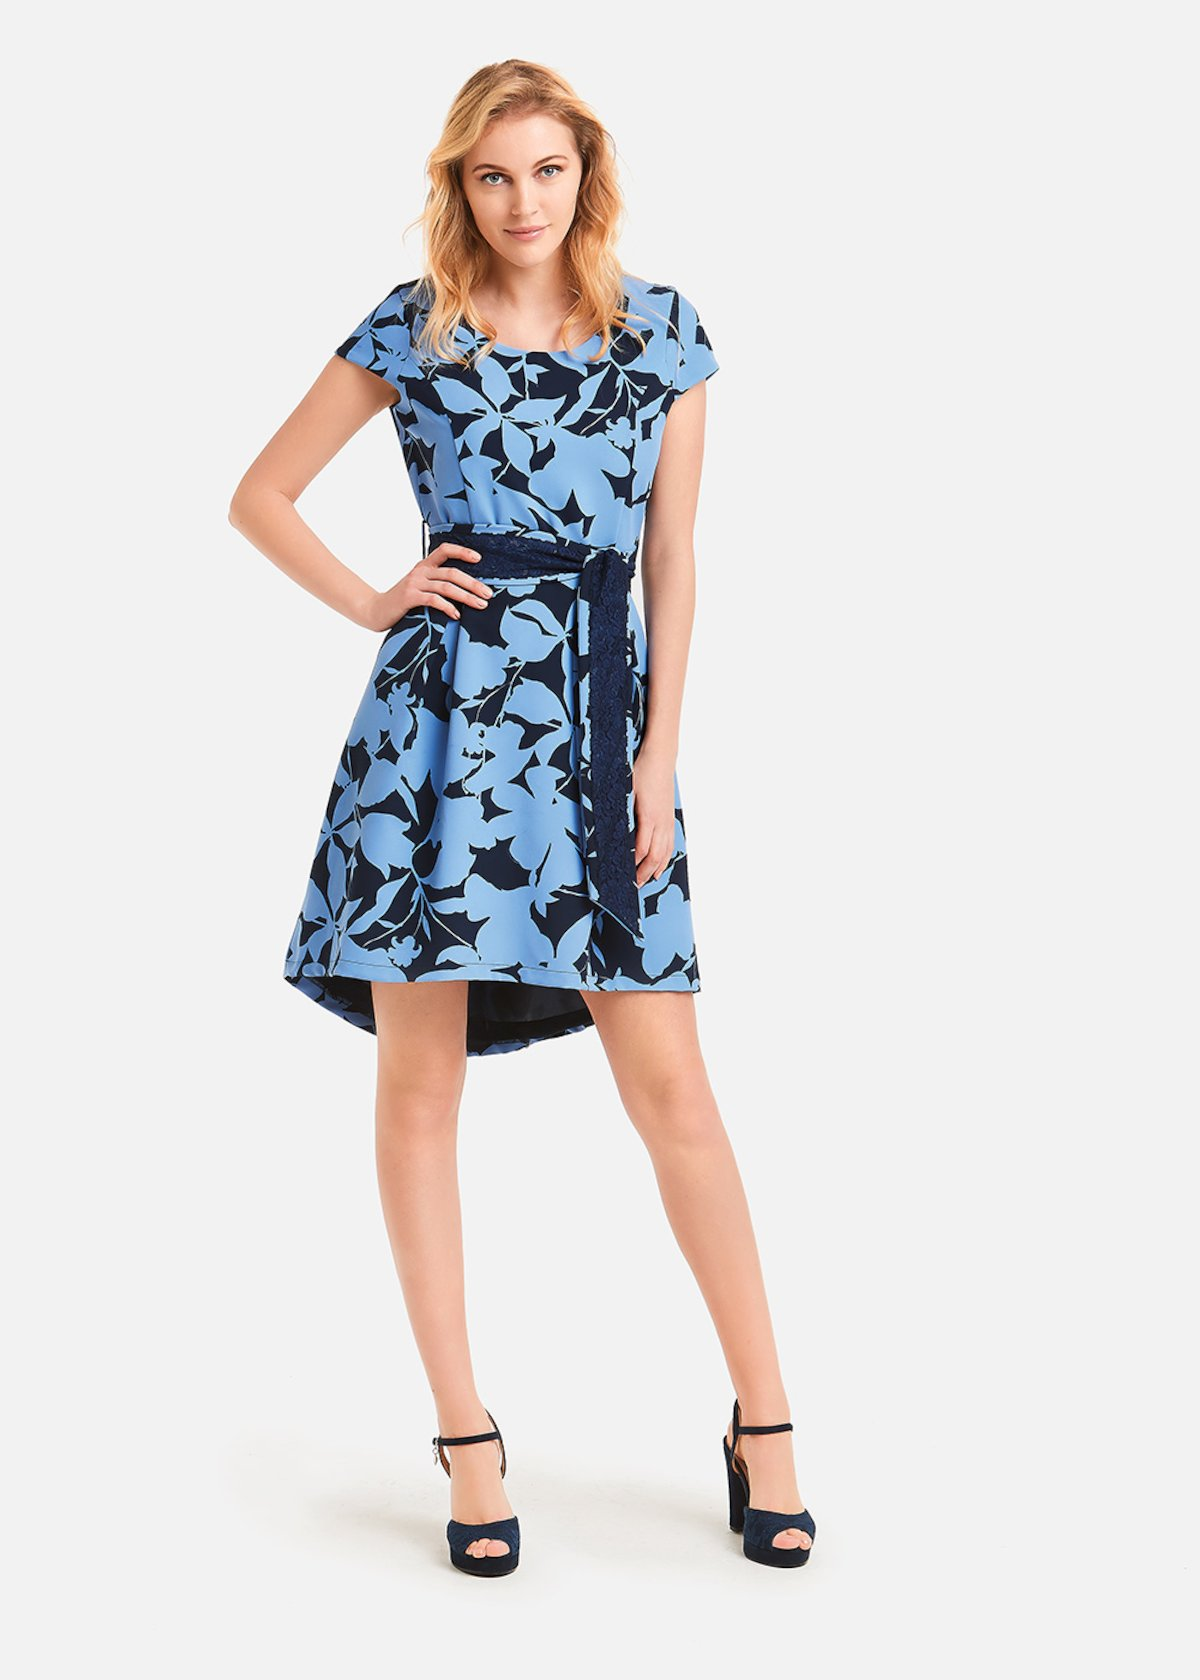 Adam dress floral pattern - Morning - Medium Blue Fantasia